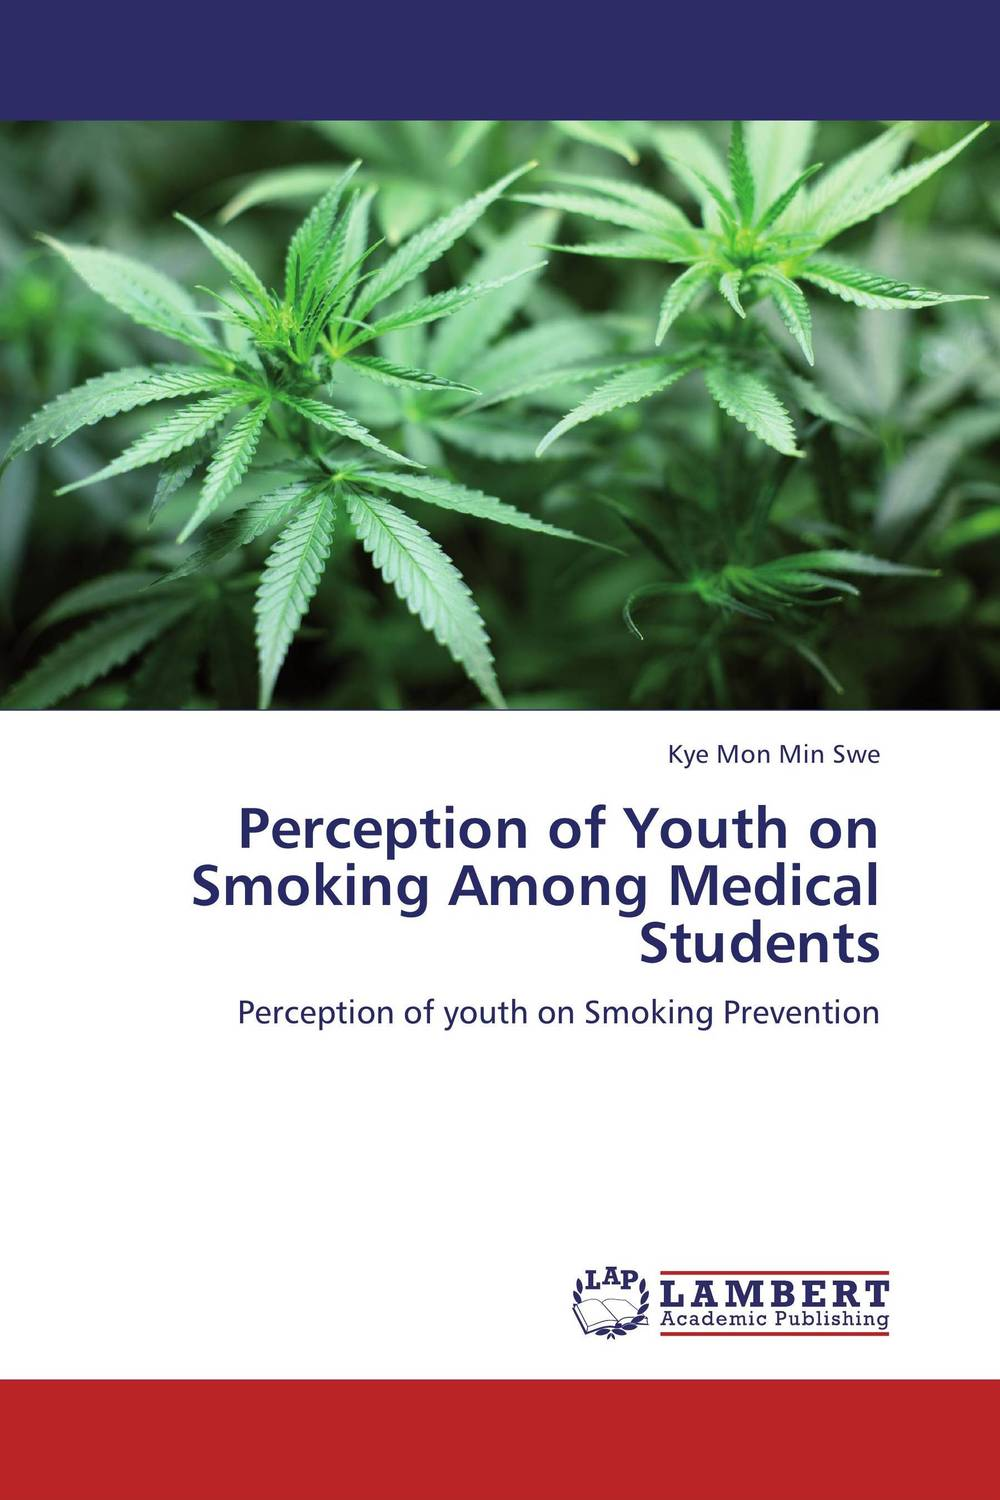 Perception of Youth on Smoking Among Medical Students dieting practices among ahfad university for women students